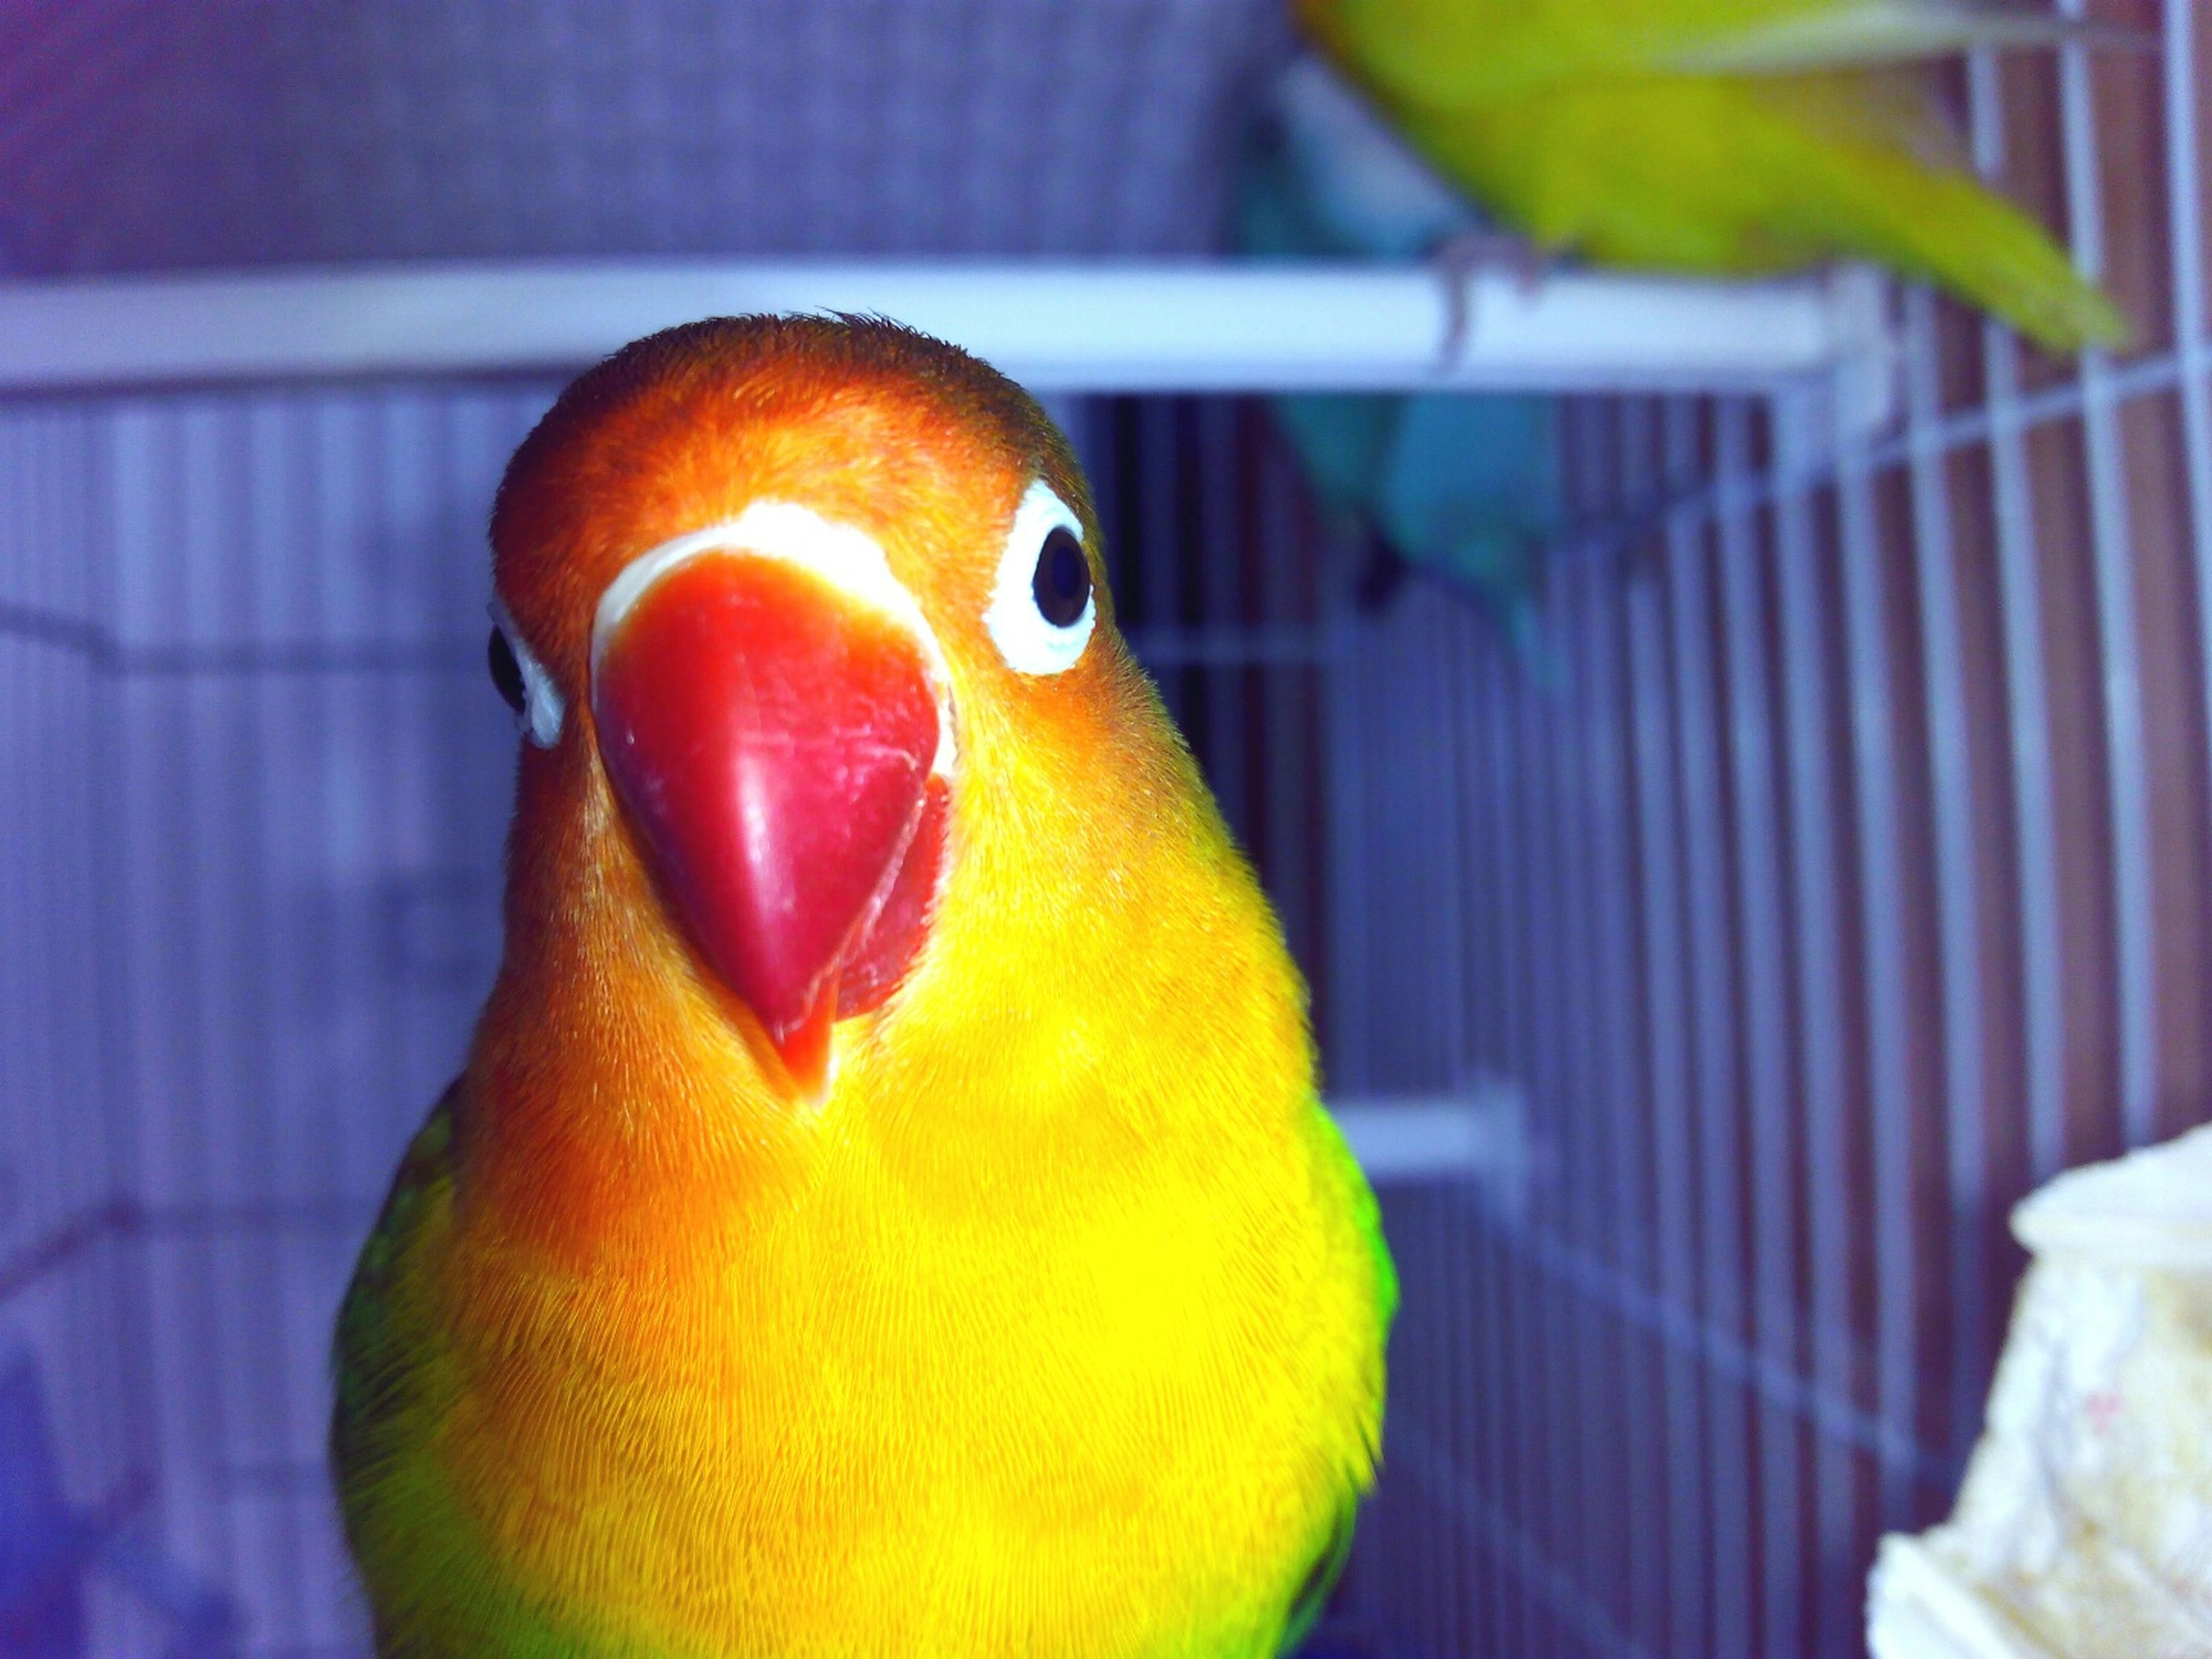 indoors, close-up, one animal, animal themes, parrot, bird, yellow, animal head, beak, multi colored, focus on foreground, no people, animal body part, wildlife, still life, animal eye, vibrant color, animals in the wild, orange color, animal representation